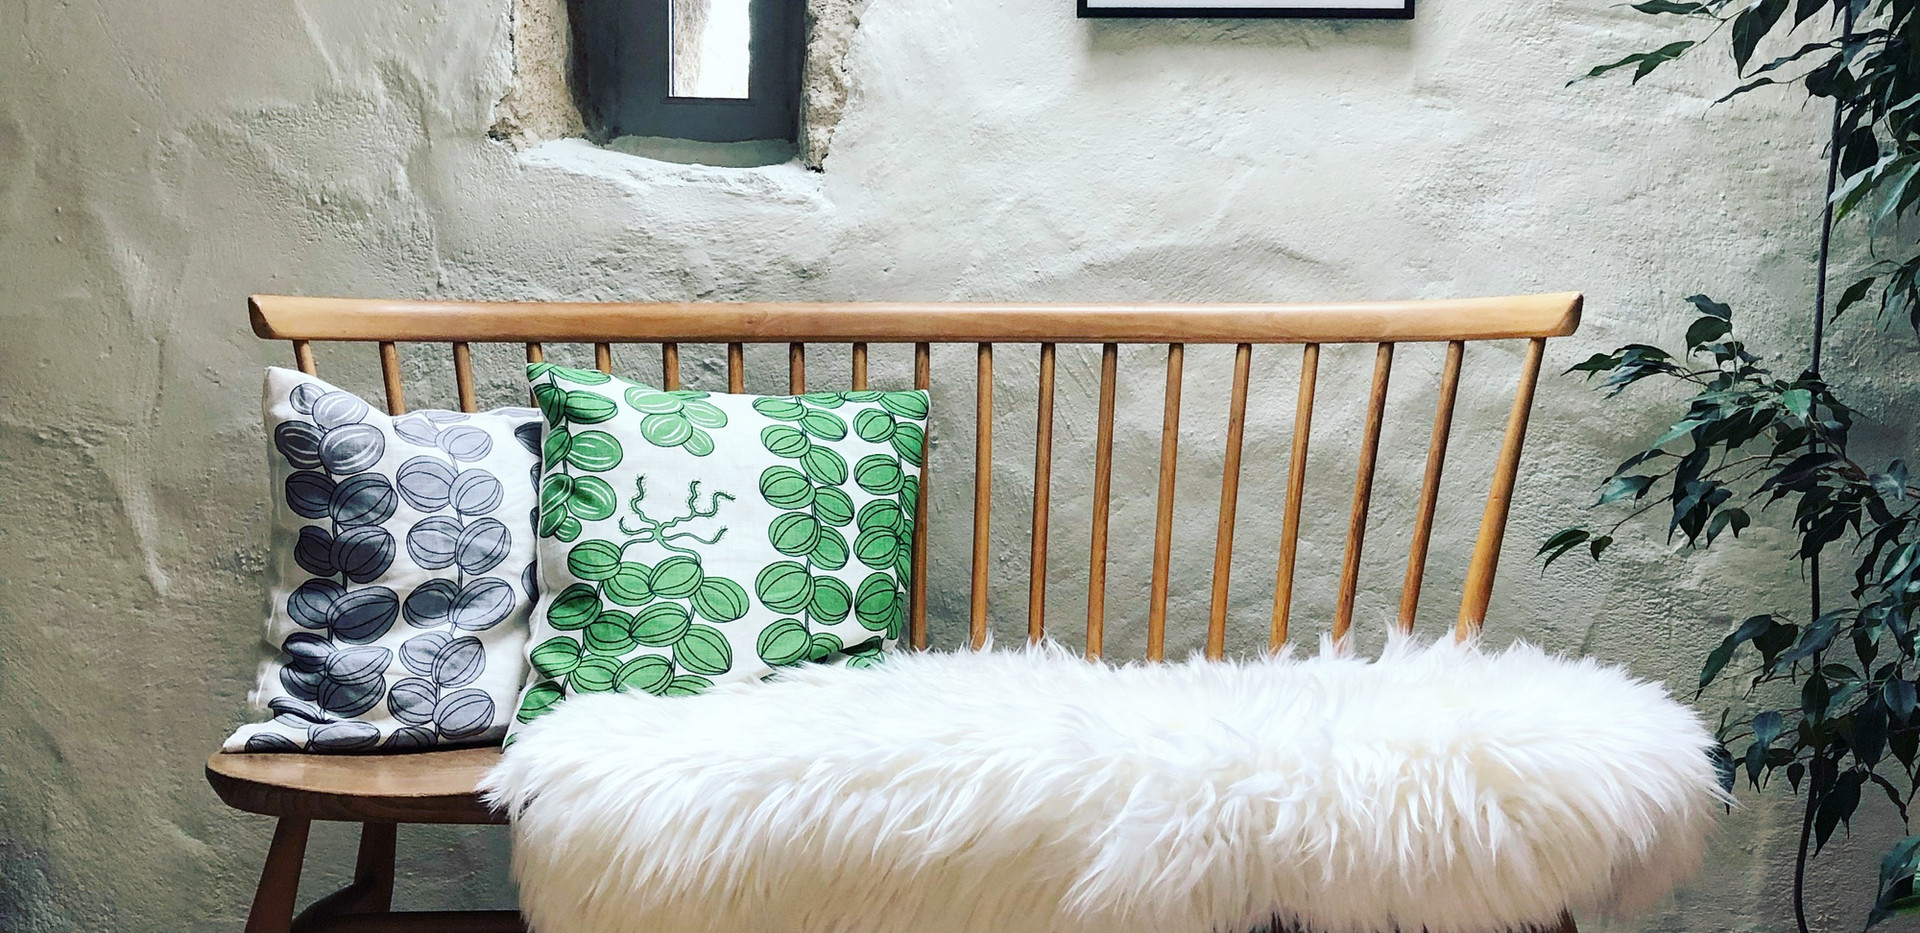 Vintage Ercol Love Seat in living area